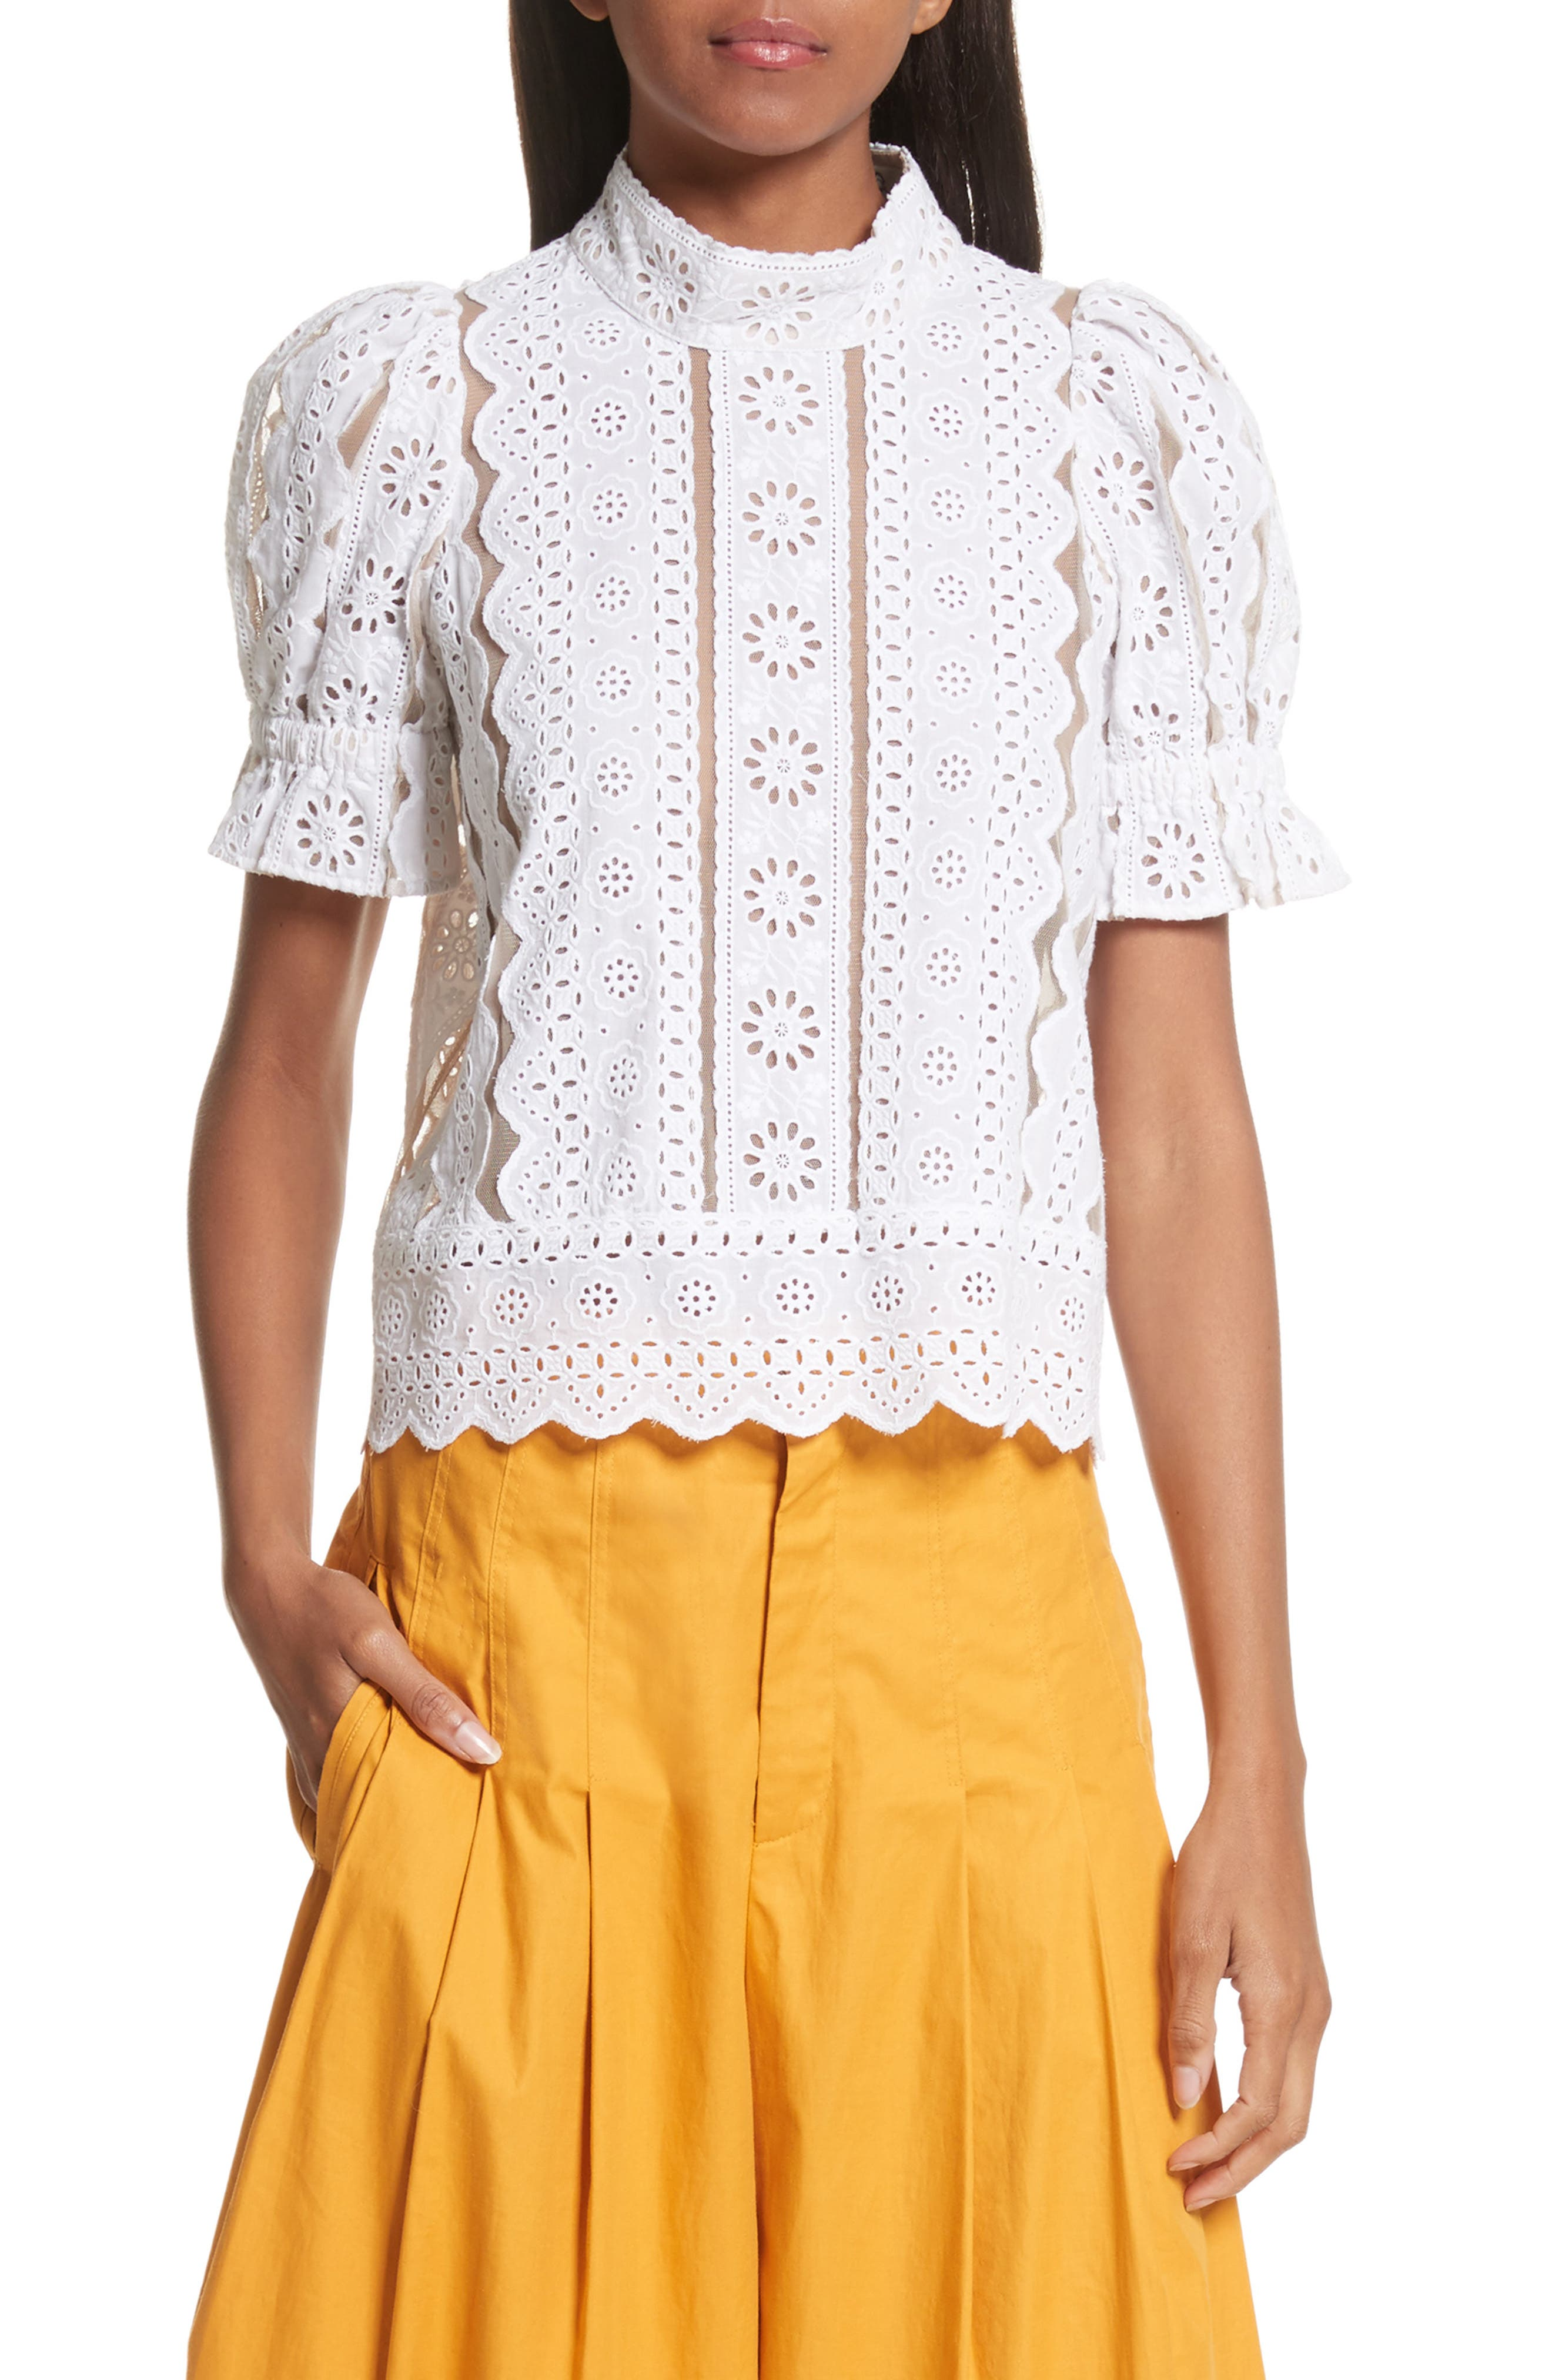 Luna Cotton Eyelet Top,                         Main,                         color, White With Nude Mesh